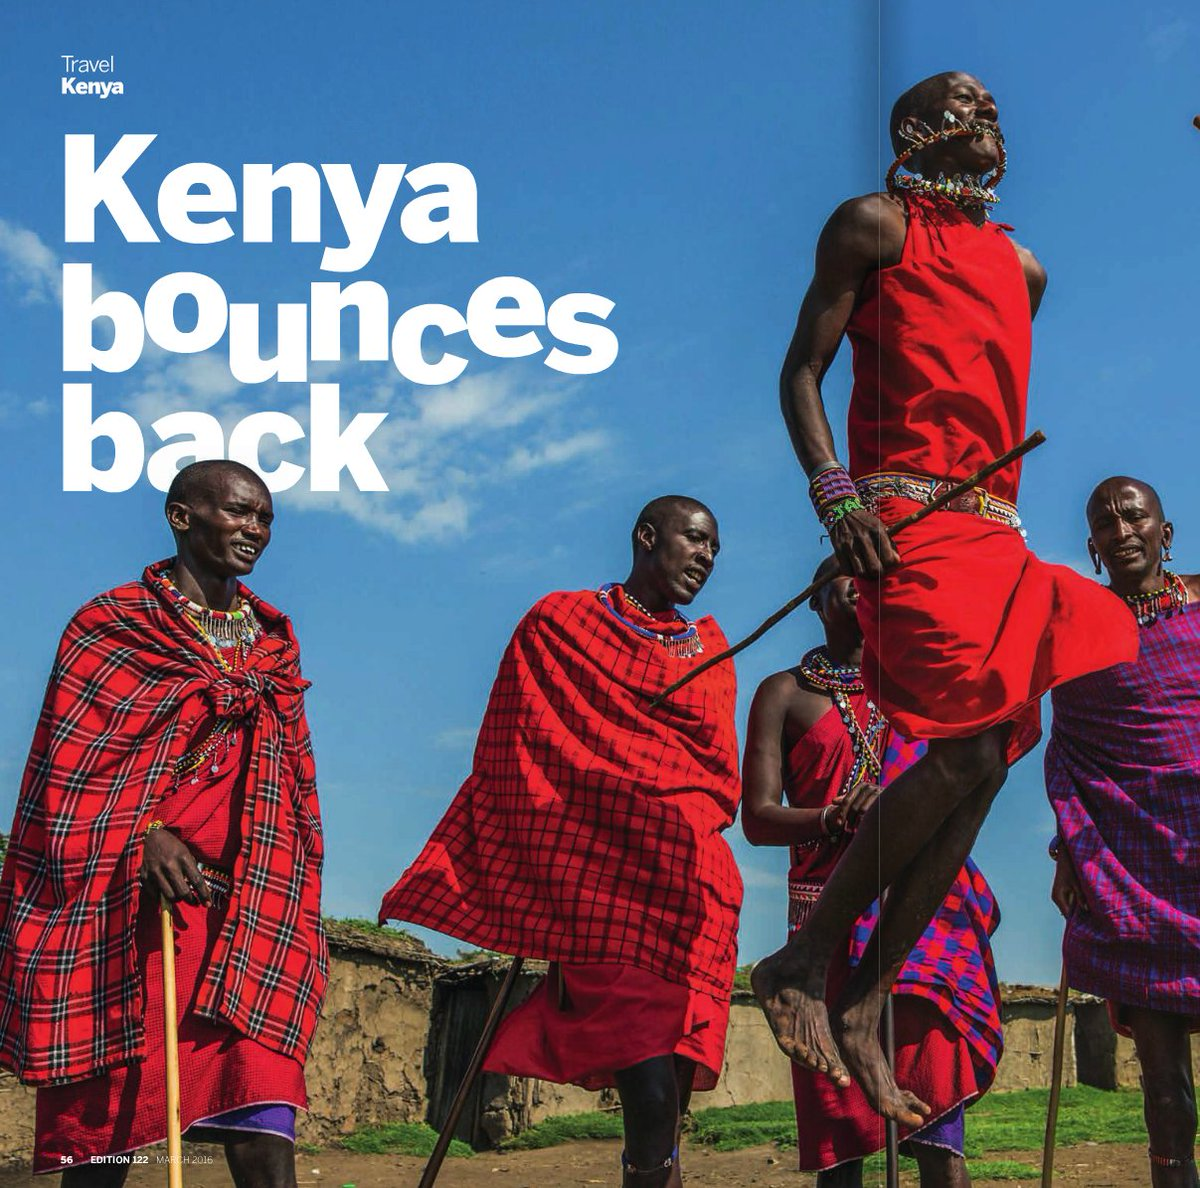 My piece in @KenyaAirways mag on resurgent tourism https://t.co/Gw7nXR2na6 @tunajibu @MagicalKenya #WhyILoveKenya https://t.co/PKOg9e2nAx